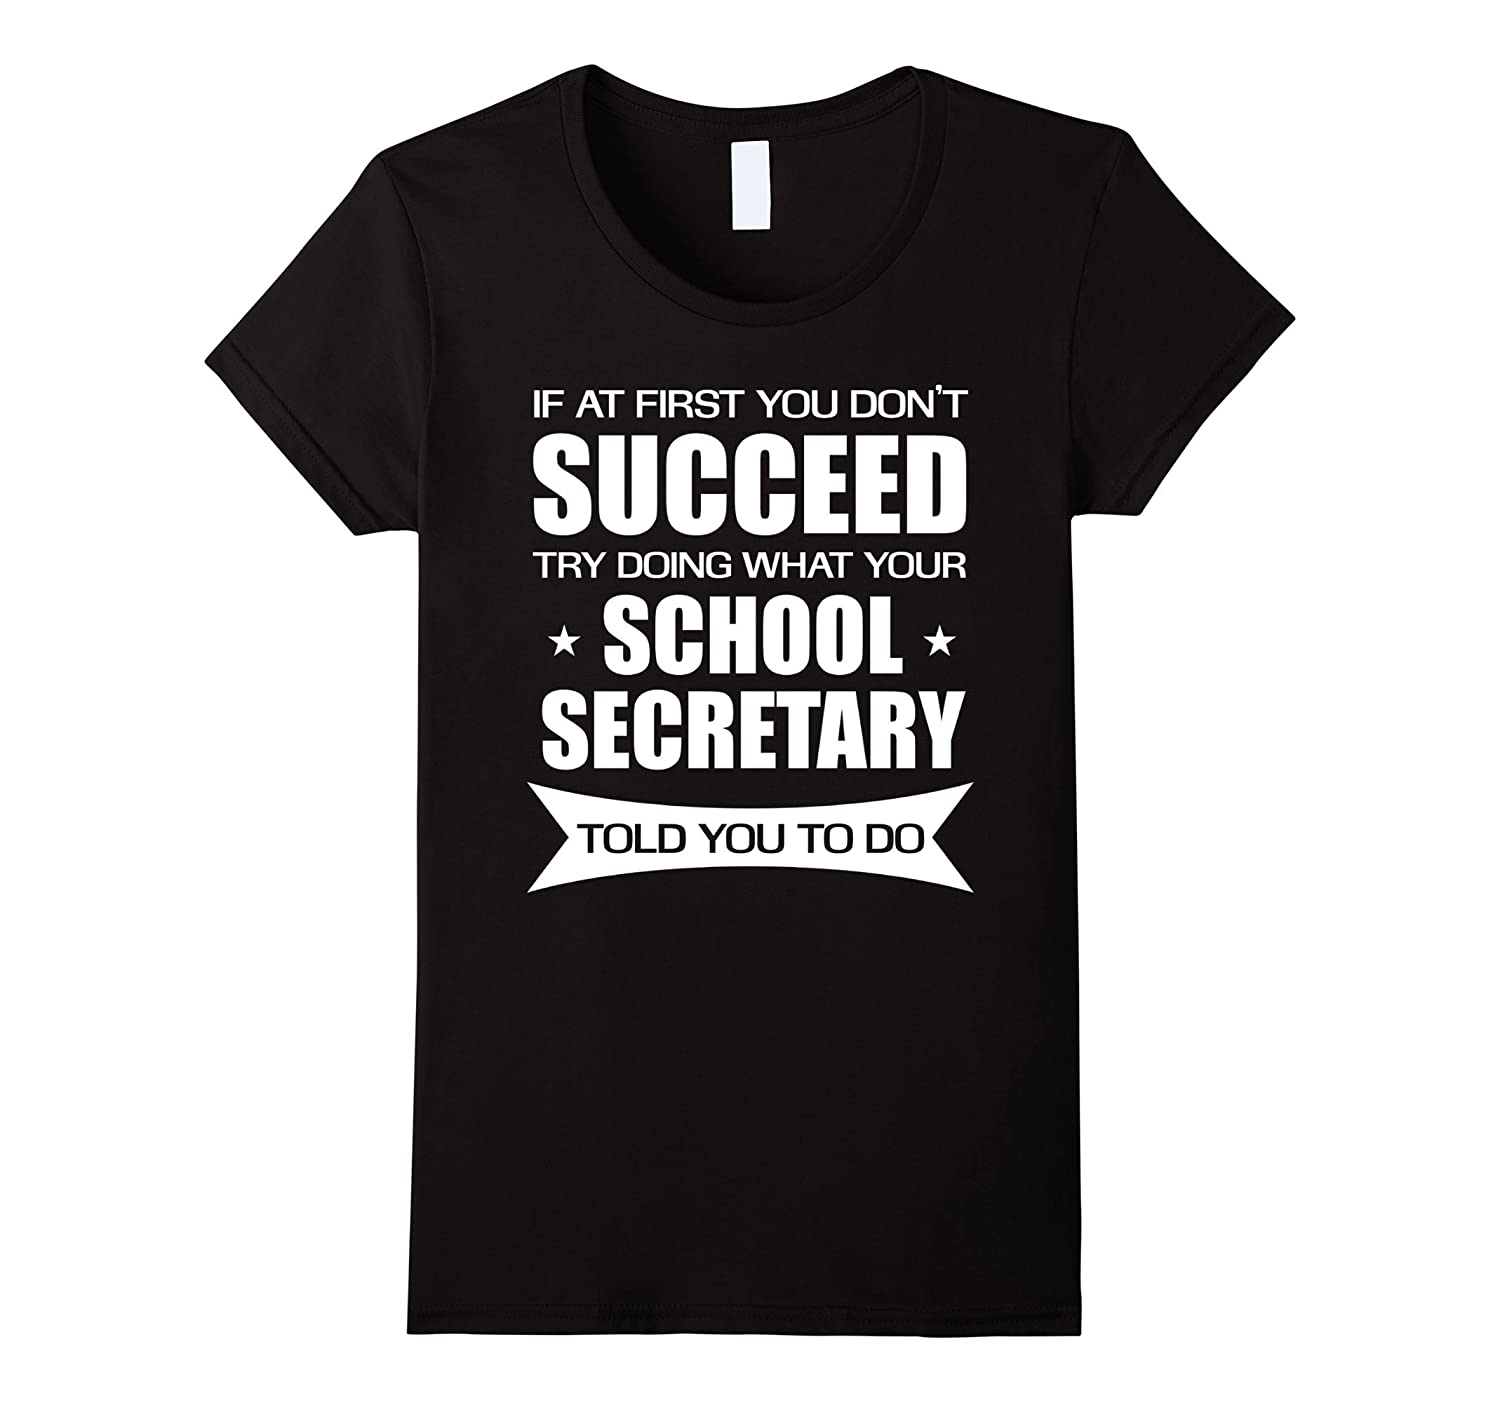 School Secretary Shirt If At First You Don't Succeed Funny